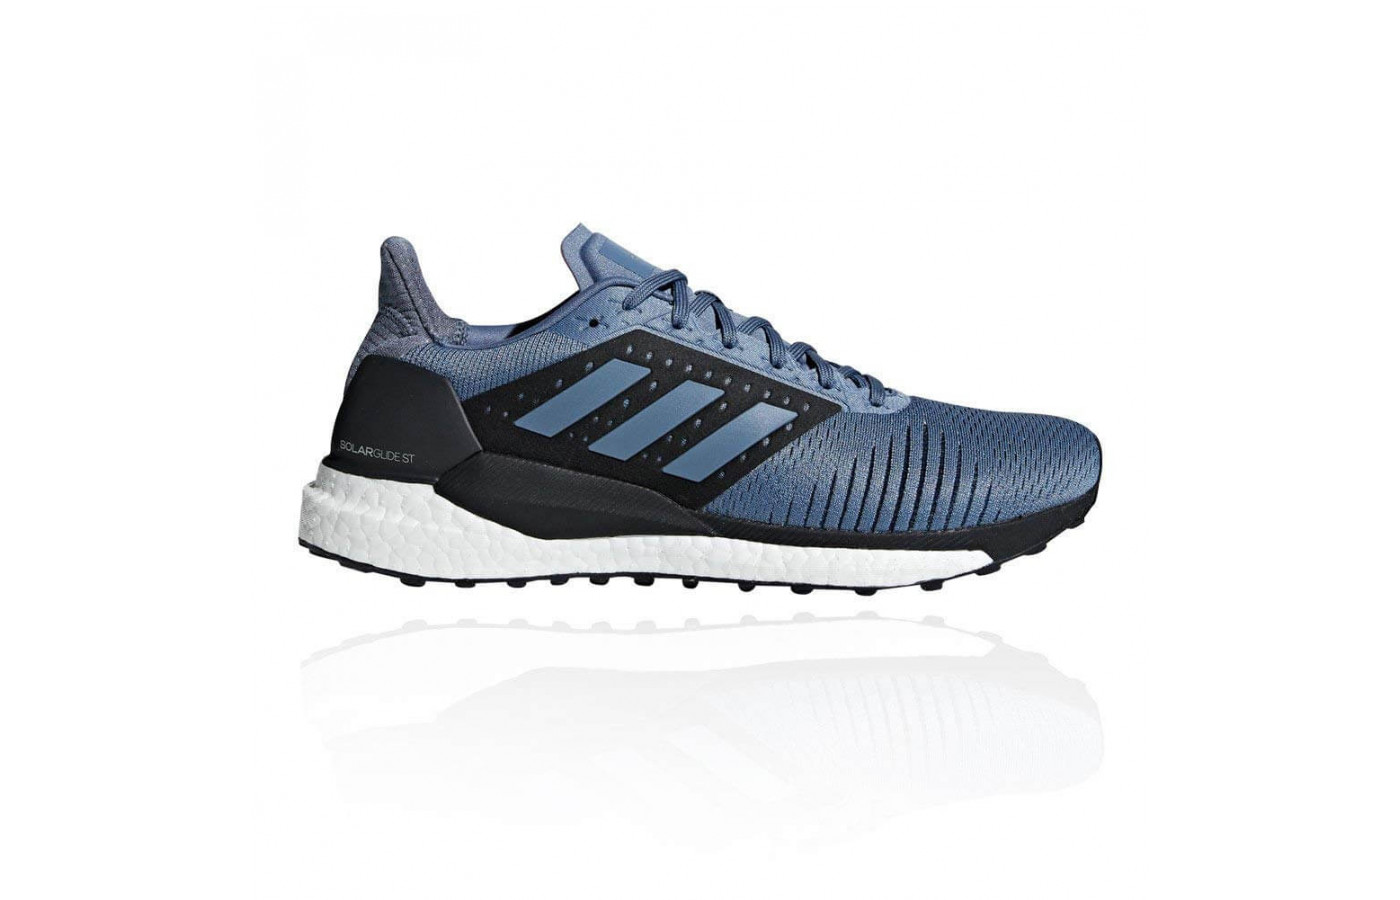 72d3b7aafa440 Adidas Solar Glide ST Review - Buy or Not in May 2019